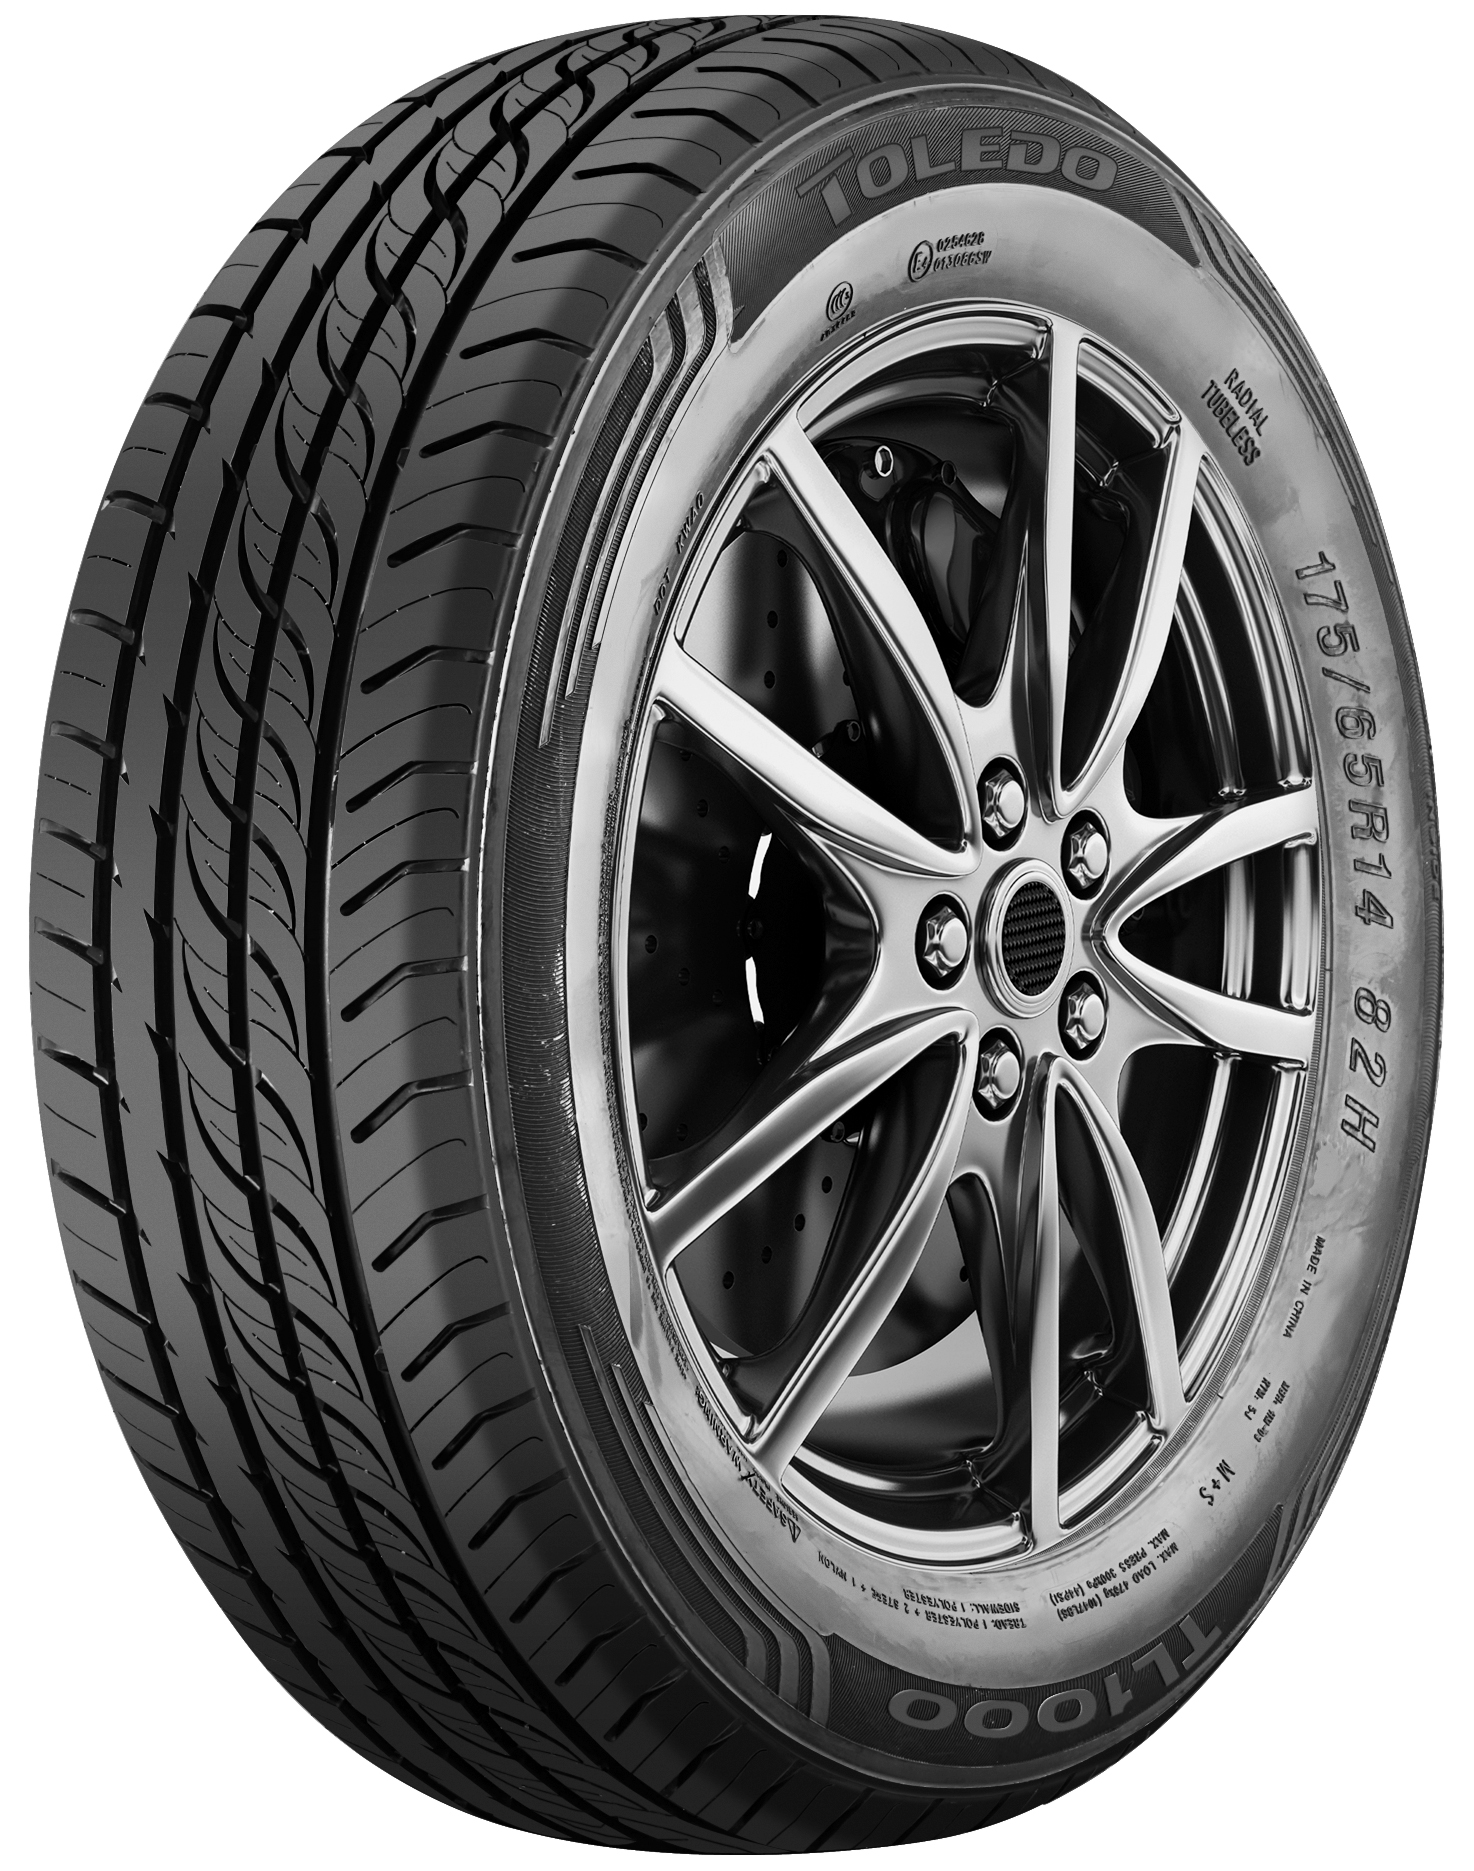 215/60R16 TOLEDO TL1000 99V XL (CAR SUMMER)